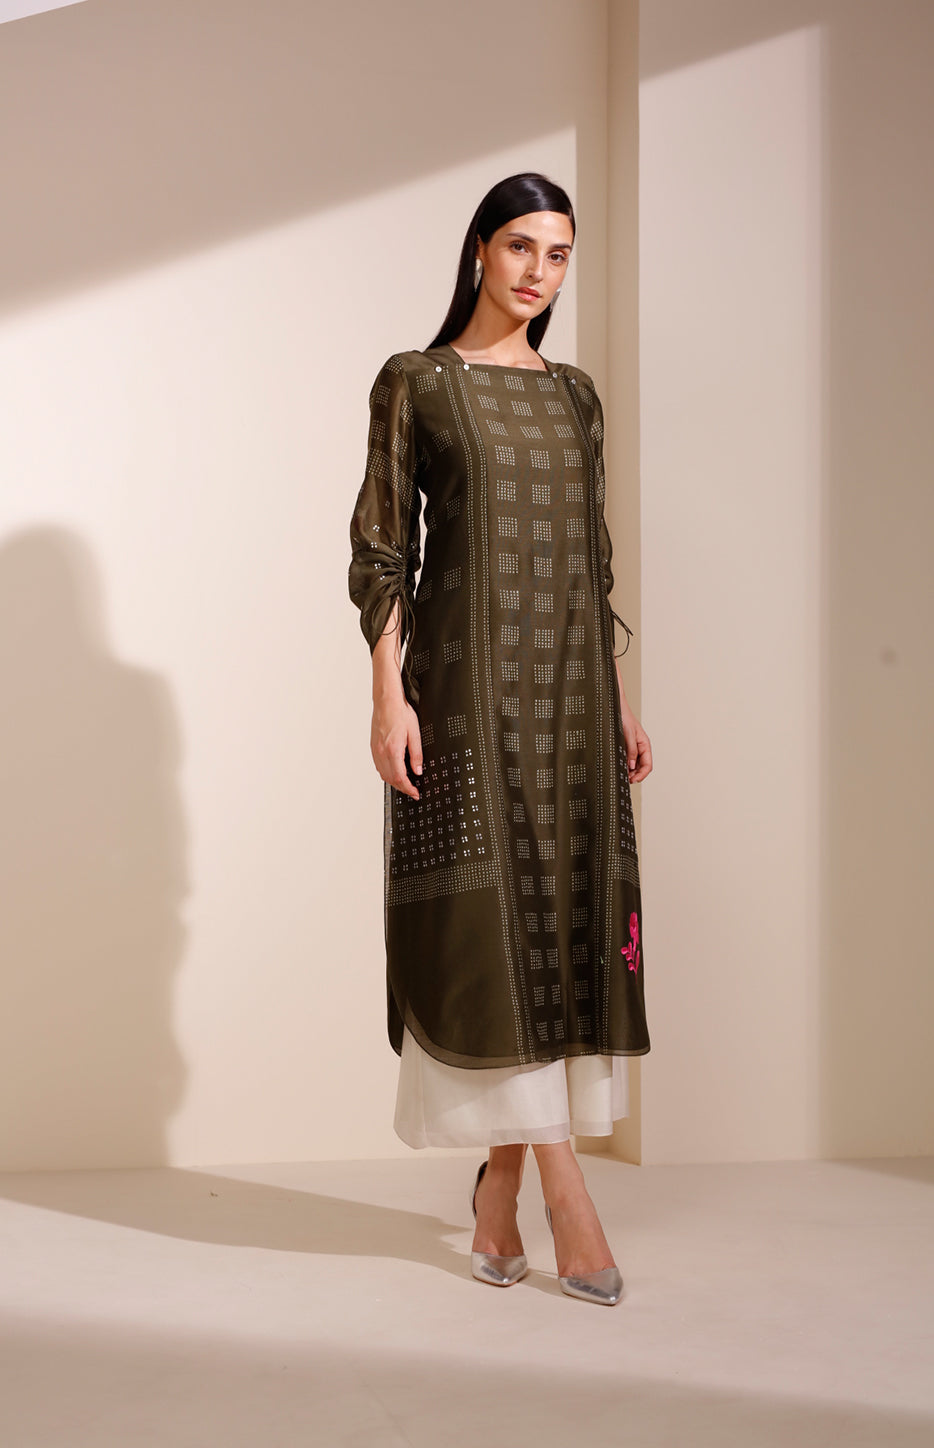 Khaki Tunic In Chanderi With Shibori Artwork